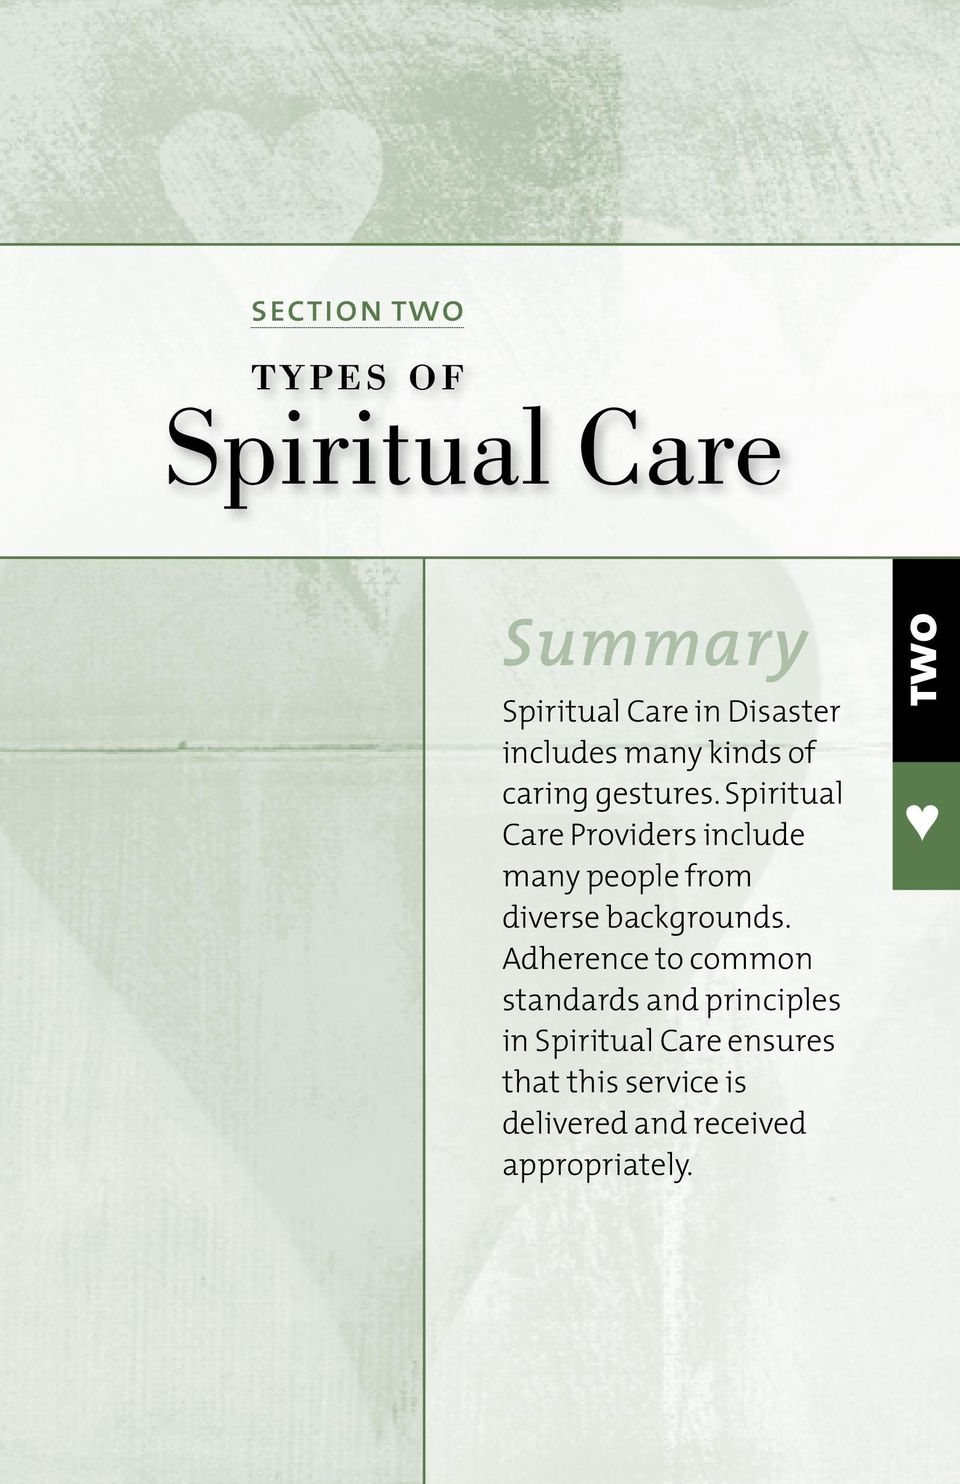 Spiritual Care Providers include many people from diverse backgrounds.